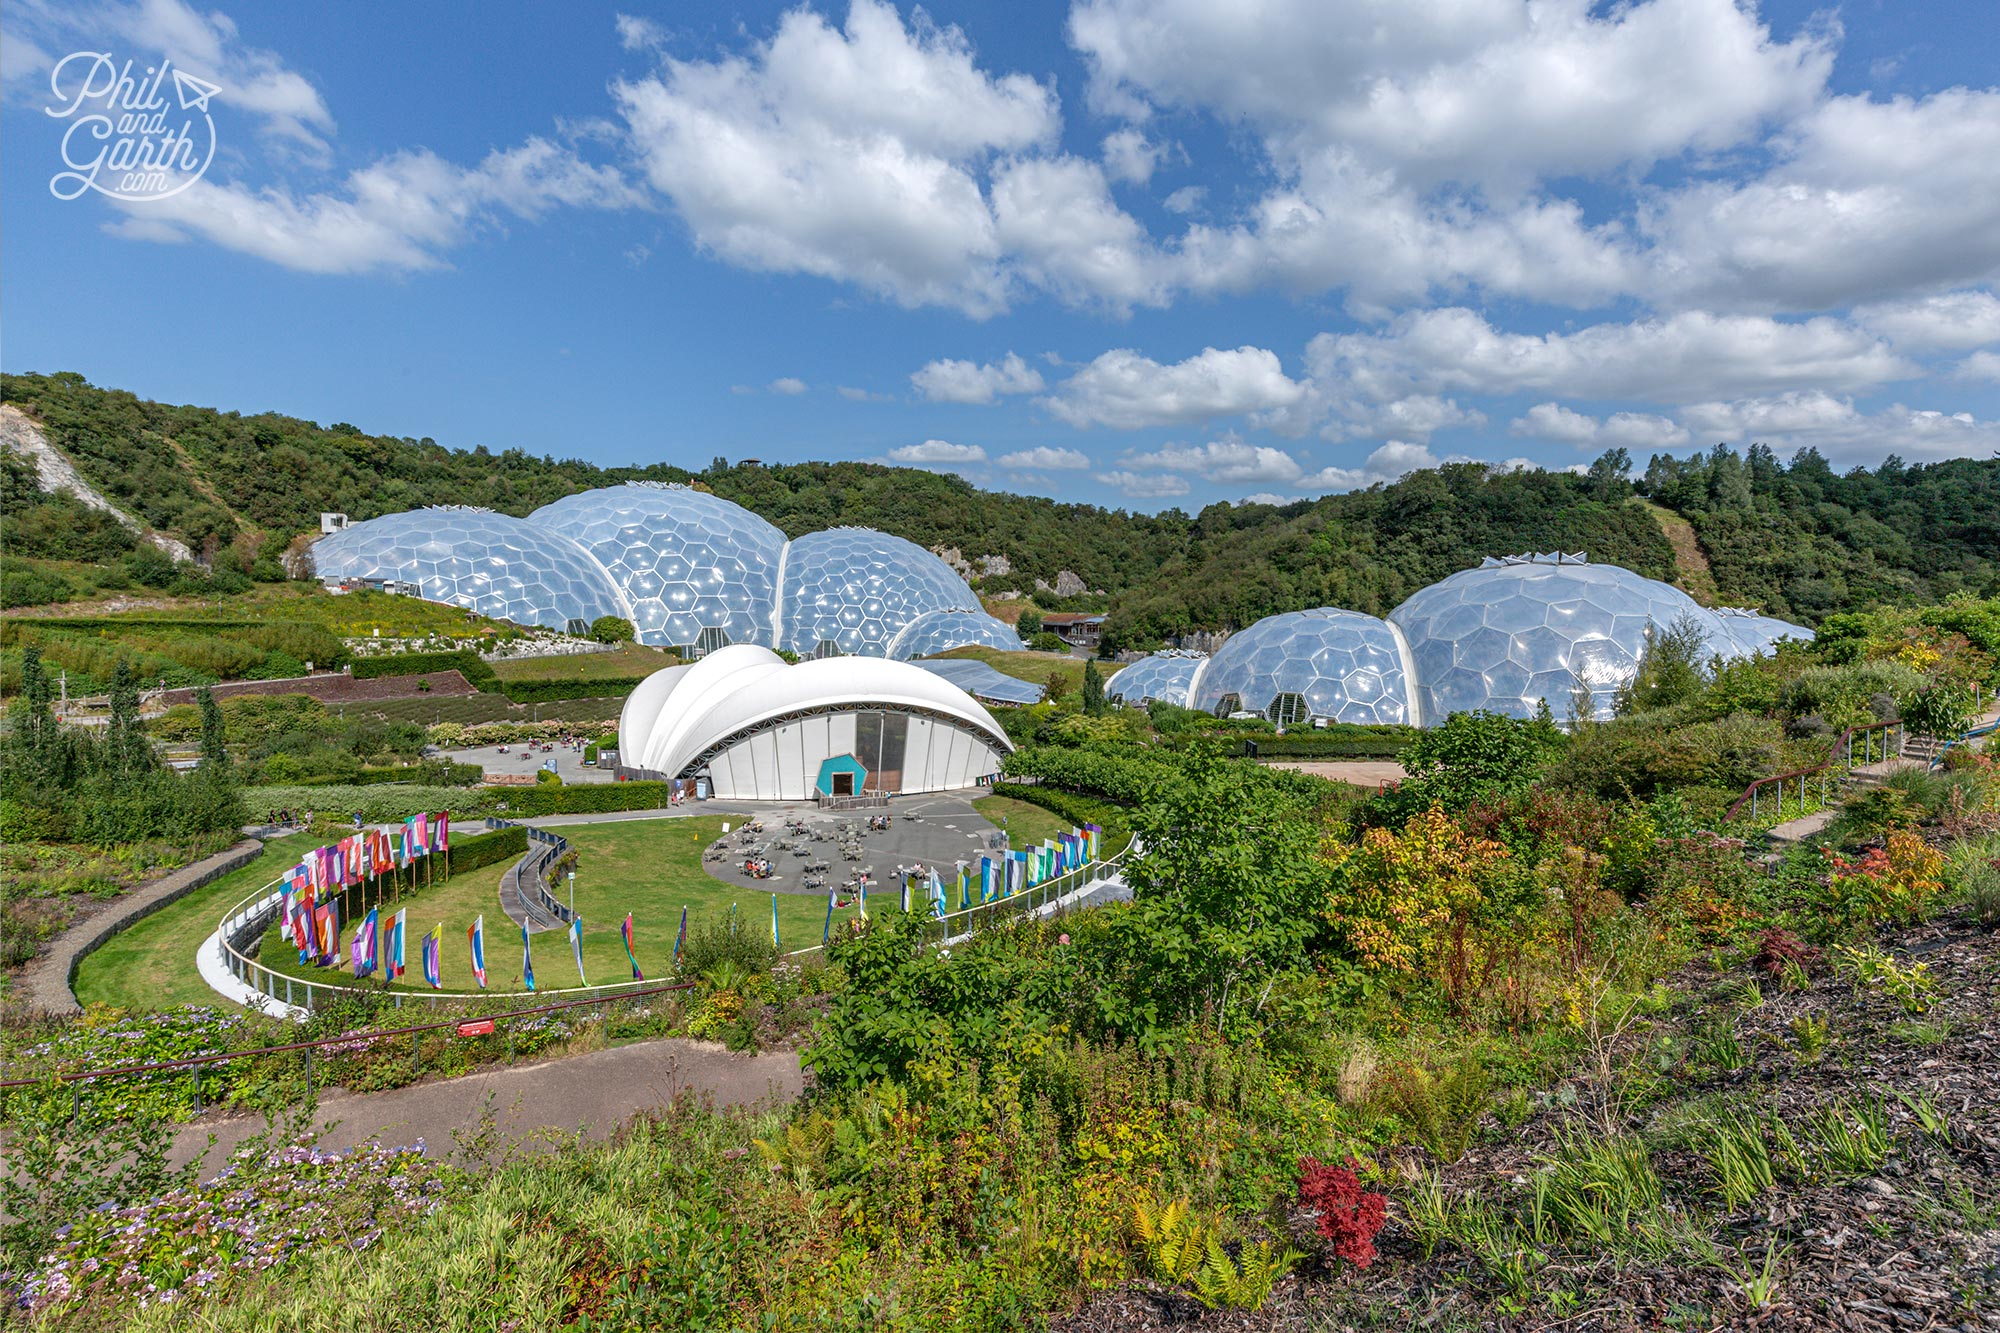 The Eden Project is a showcase for global bio diversity and sustainability